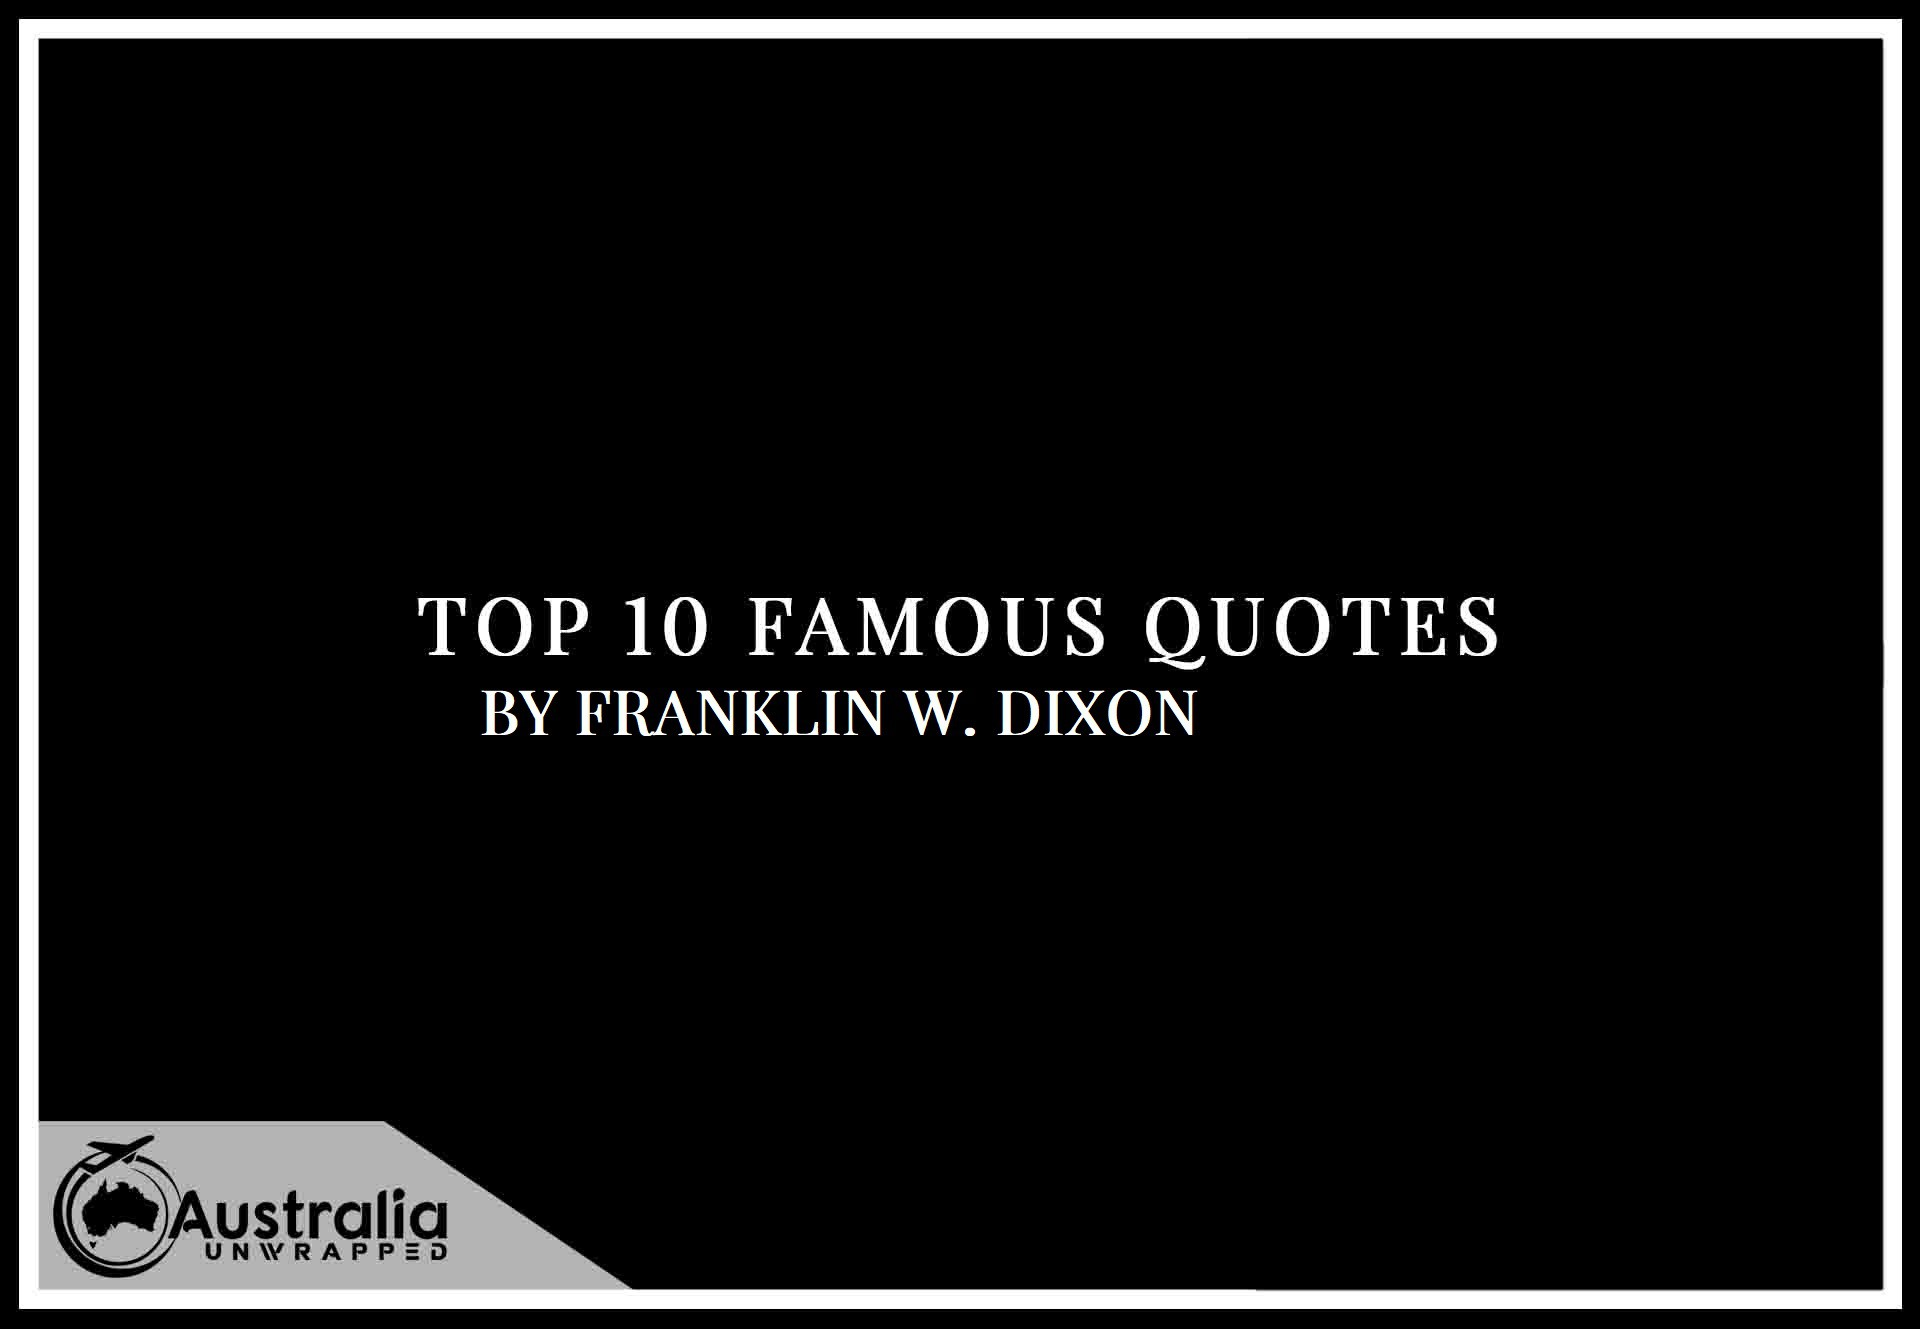 Top 10 Famous Quotes by Author Franklin W. Dixon